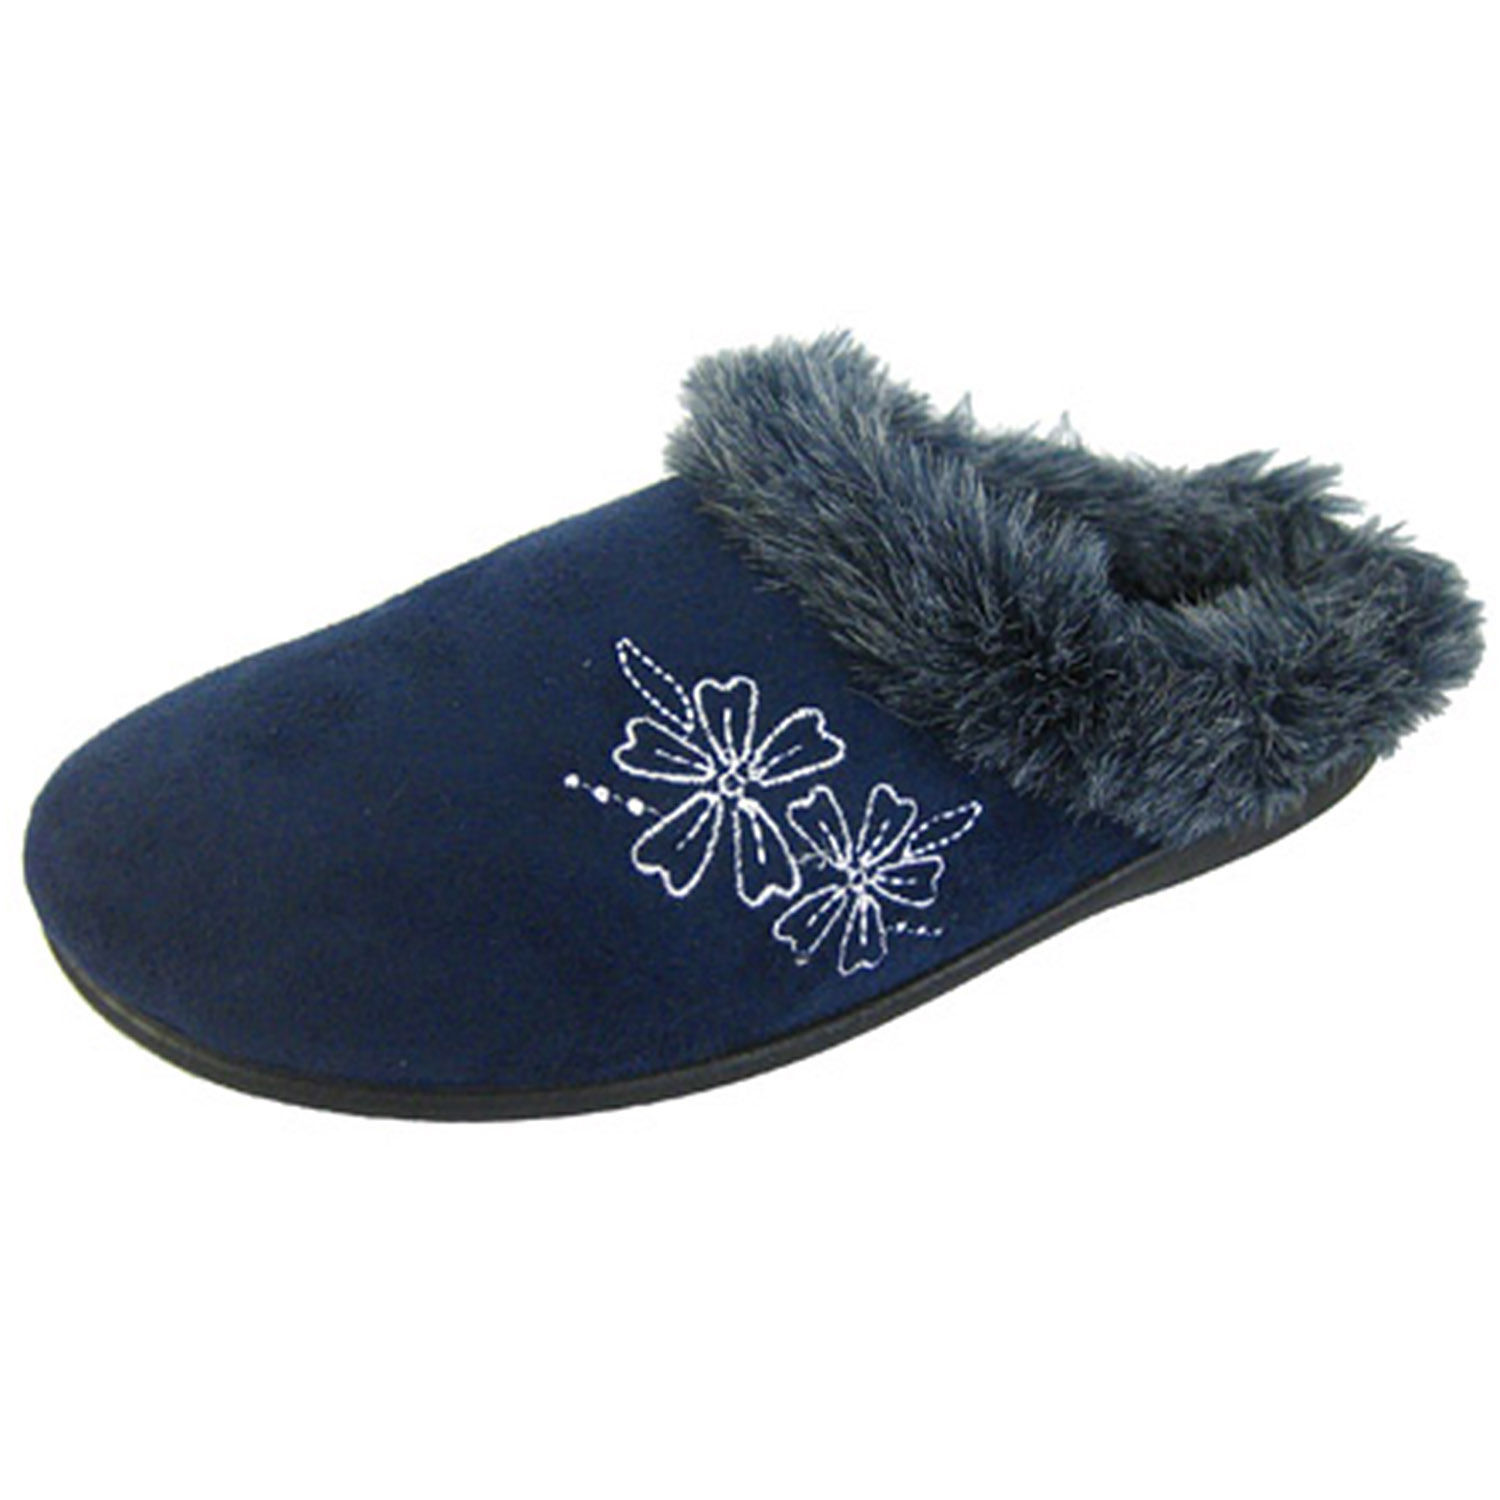 LADIES SLIPPERS   BRAND NEW   FREE POST COOLERS LADIES KNIITED BOOT